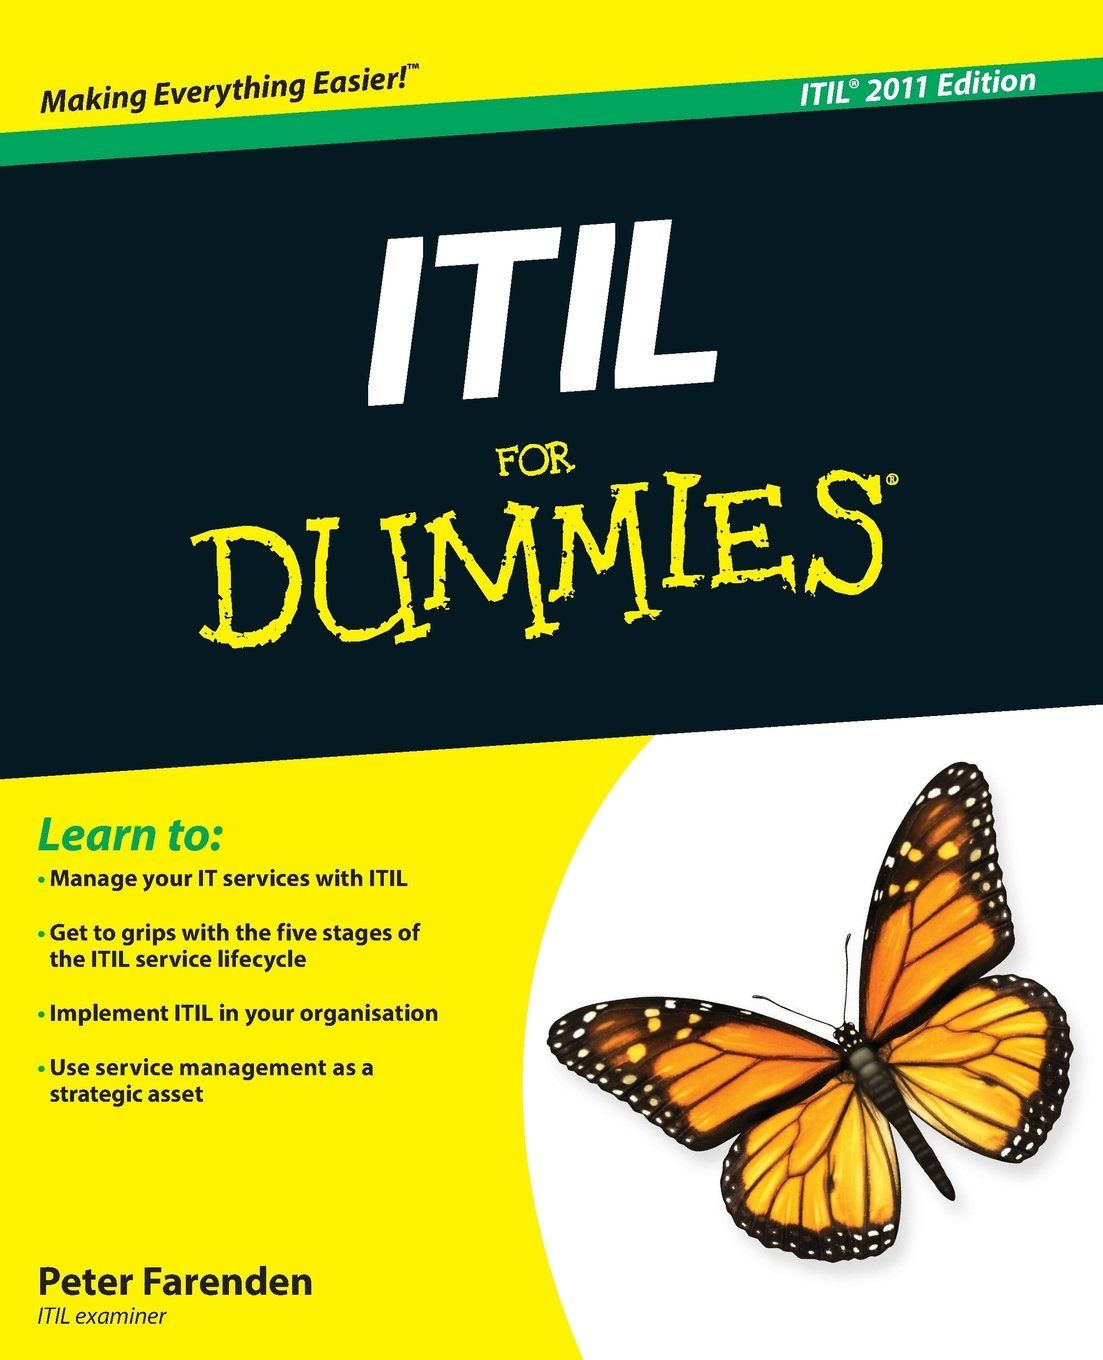 Itil for dummies amazon peter farenden 9781119950134 books 1betcityfo Images